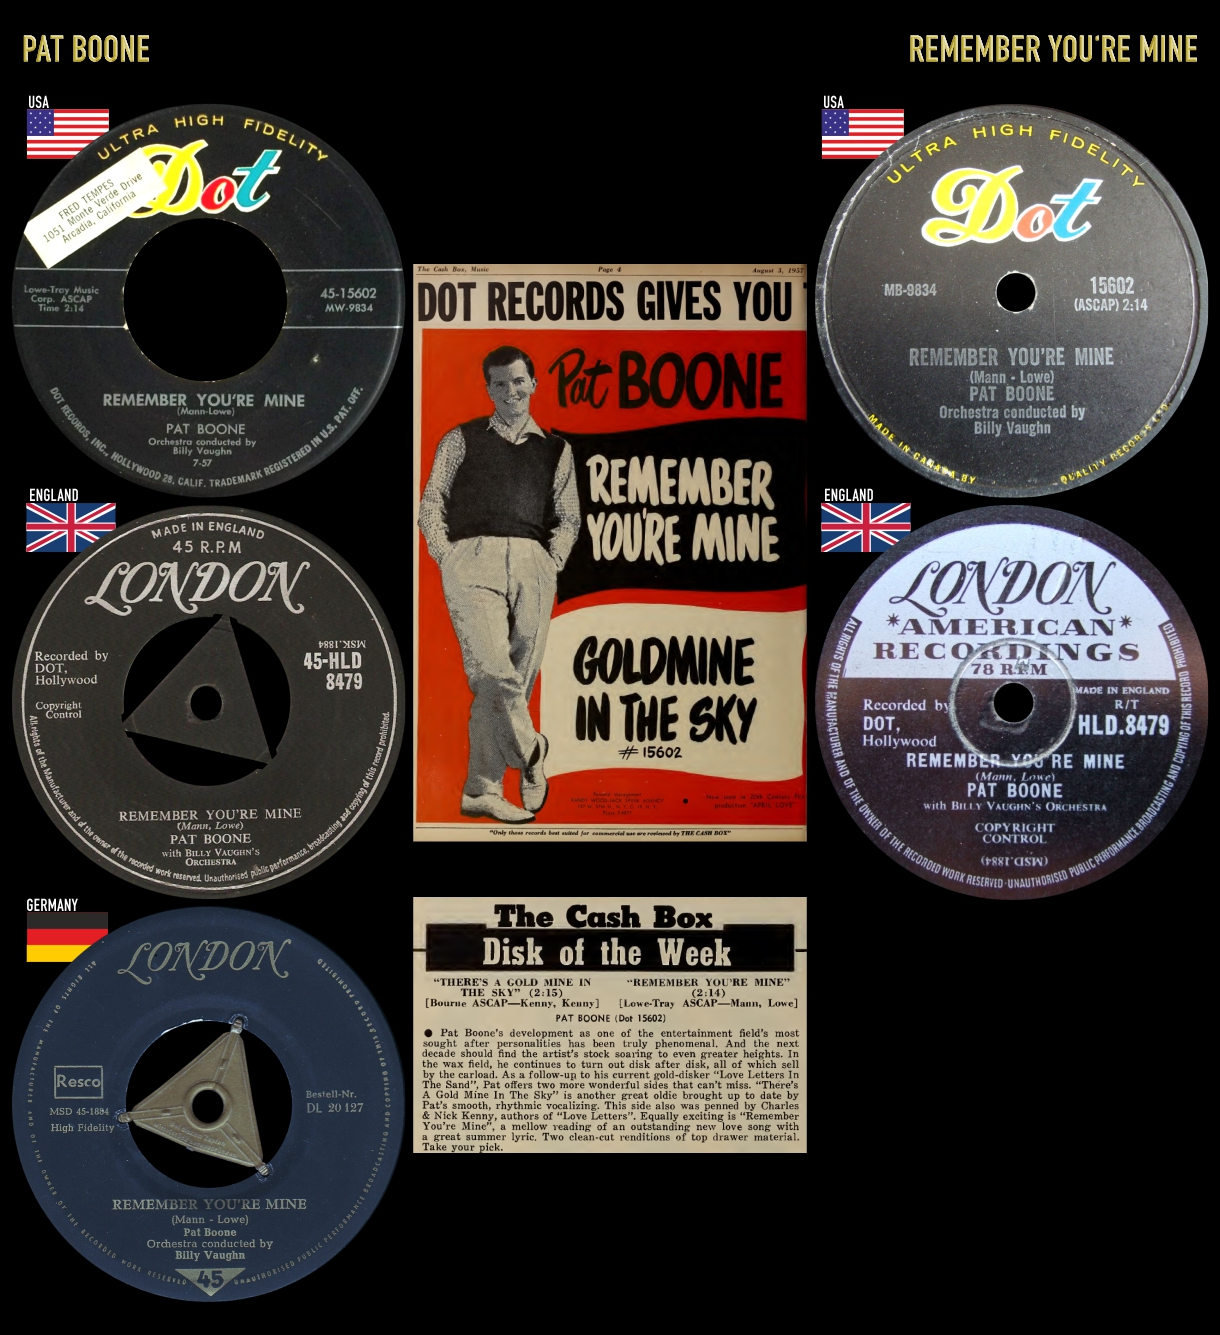 570928_Pat Boone_Remember You're Mine